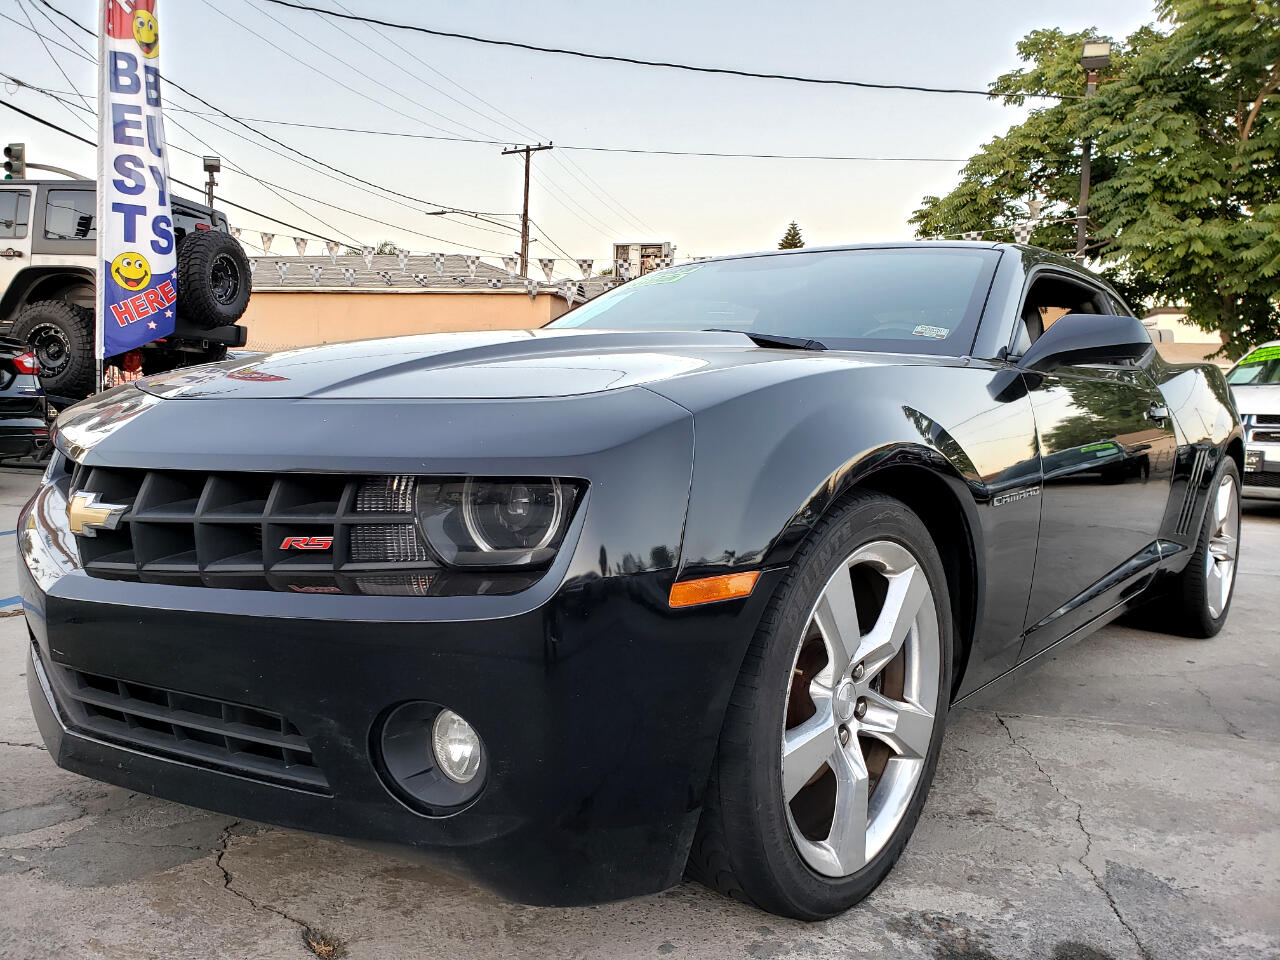 2011 Chevrolet Camaro 2dr Coupe RS